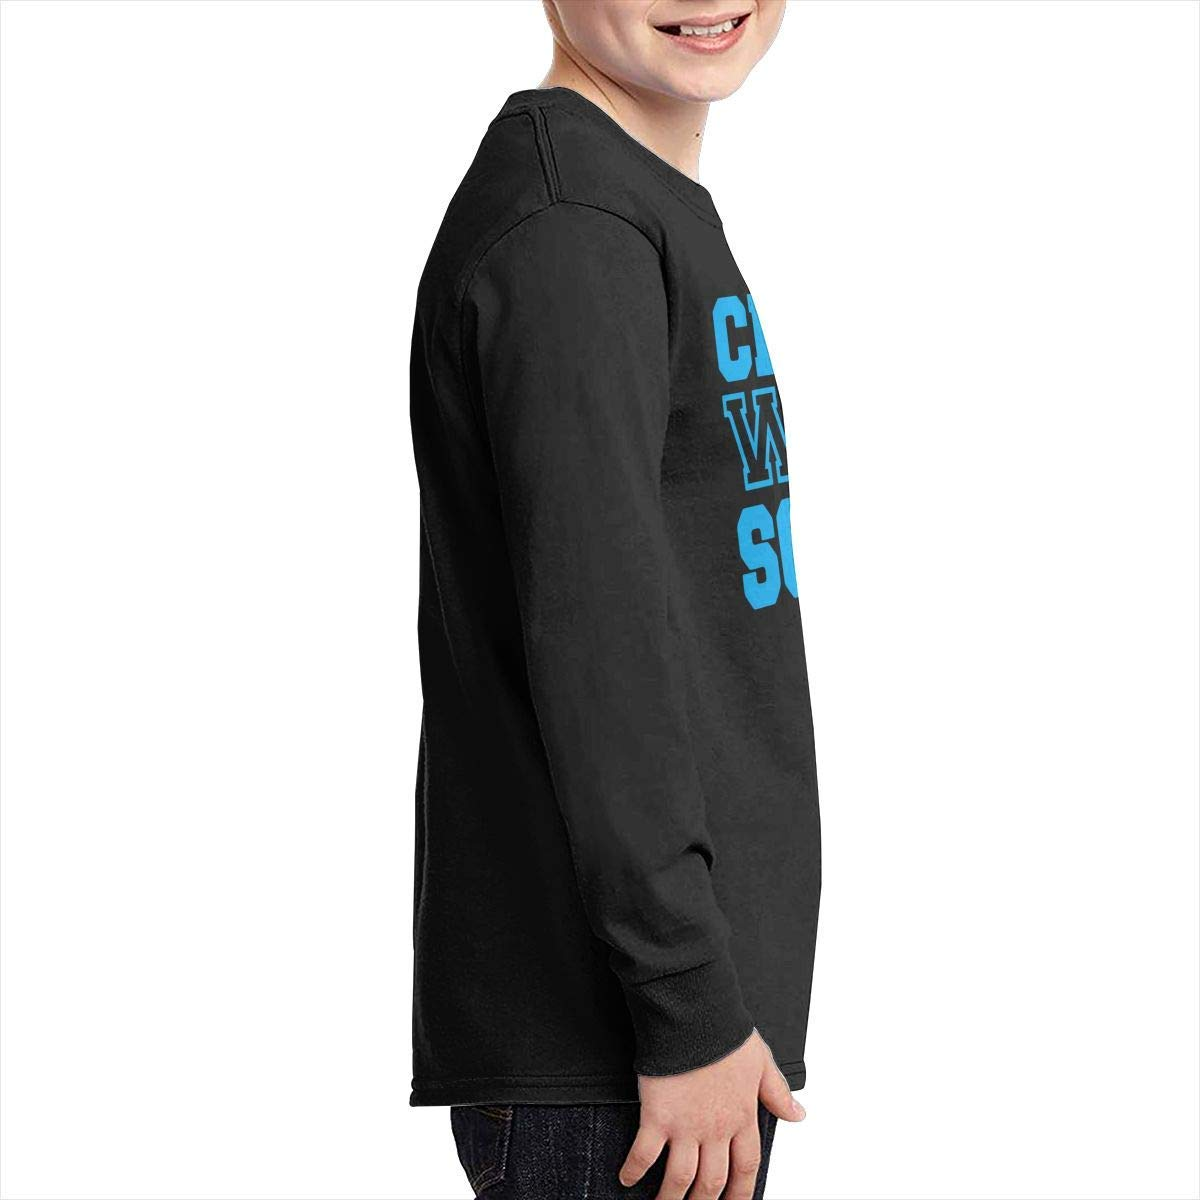 Youth Fit Long Sleeve Crew Neck Cotton Crawl Walk Soccer Basic Tee for Youth